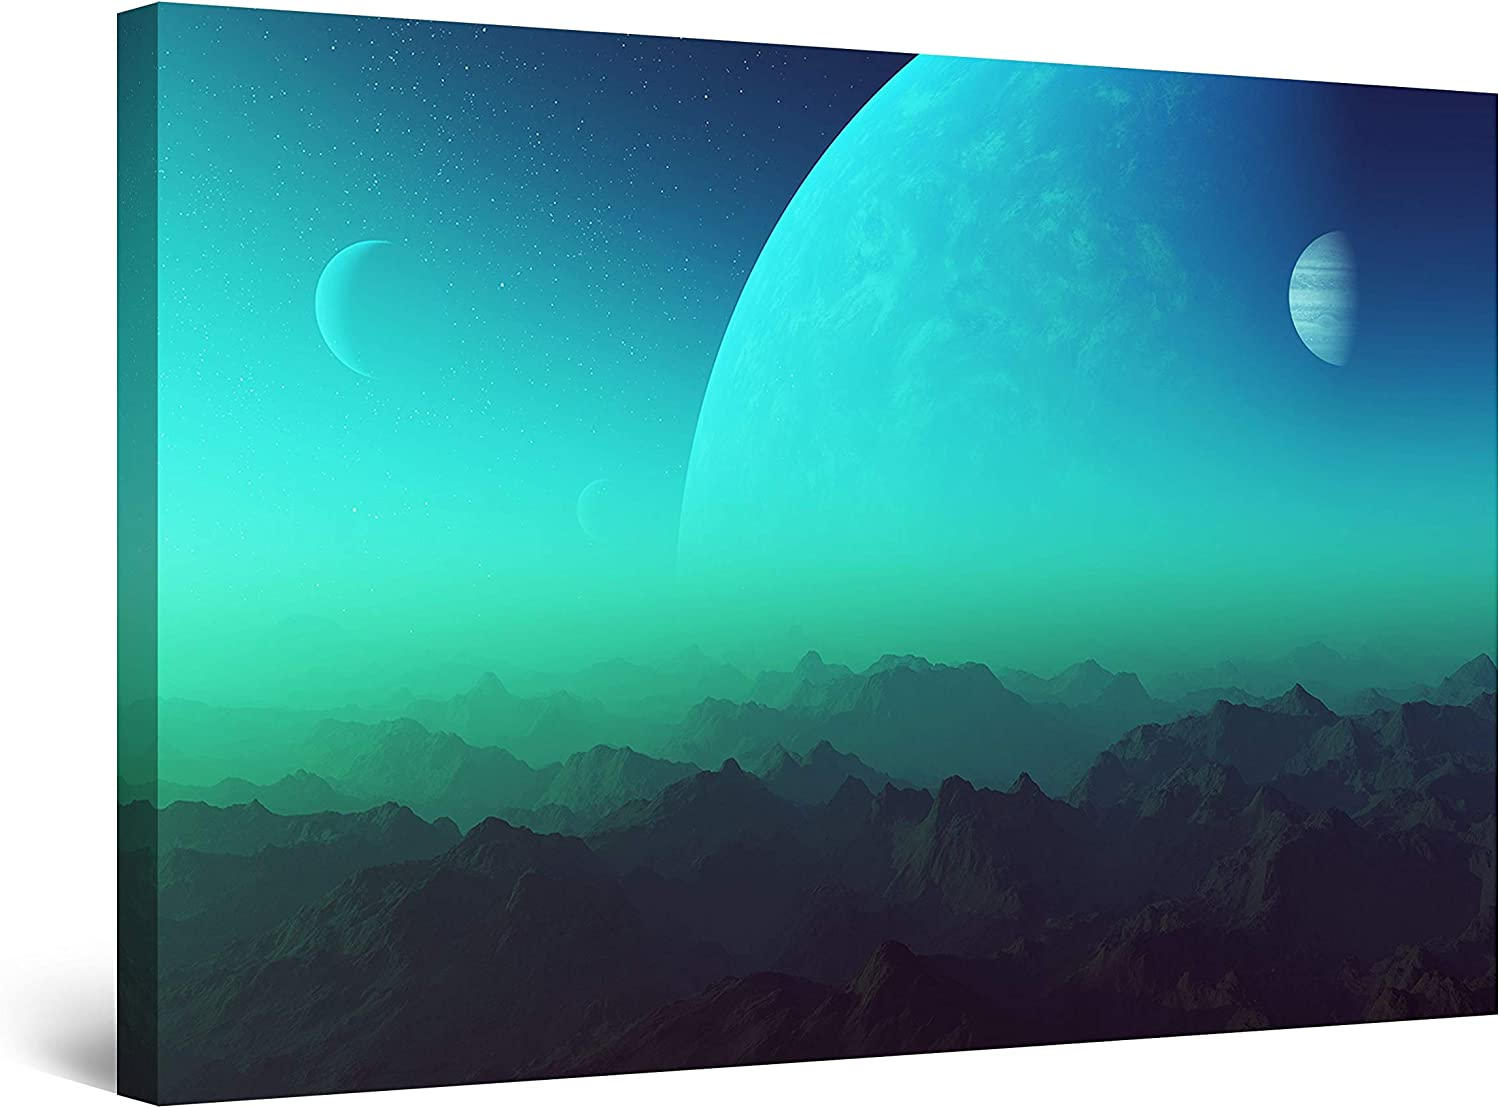 Startonight Canvas Wall Bombing free shipping Art Decor fo World New products, world's highest quality popular! Print Turquoise Foggy